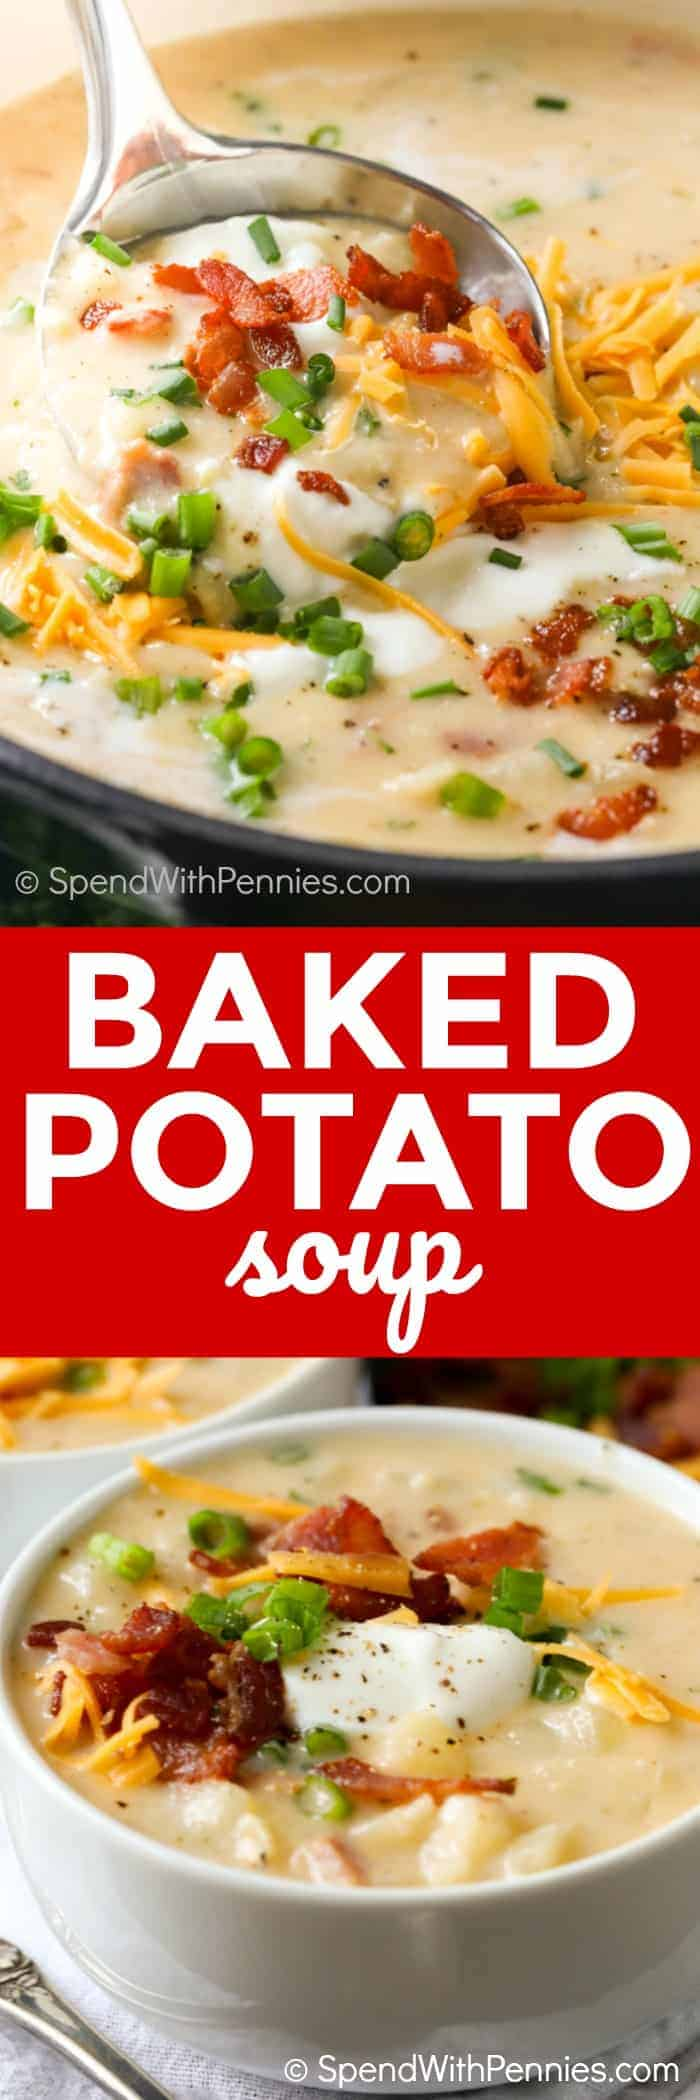 Baked Potato Soup in a bowl and in a pot with a title